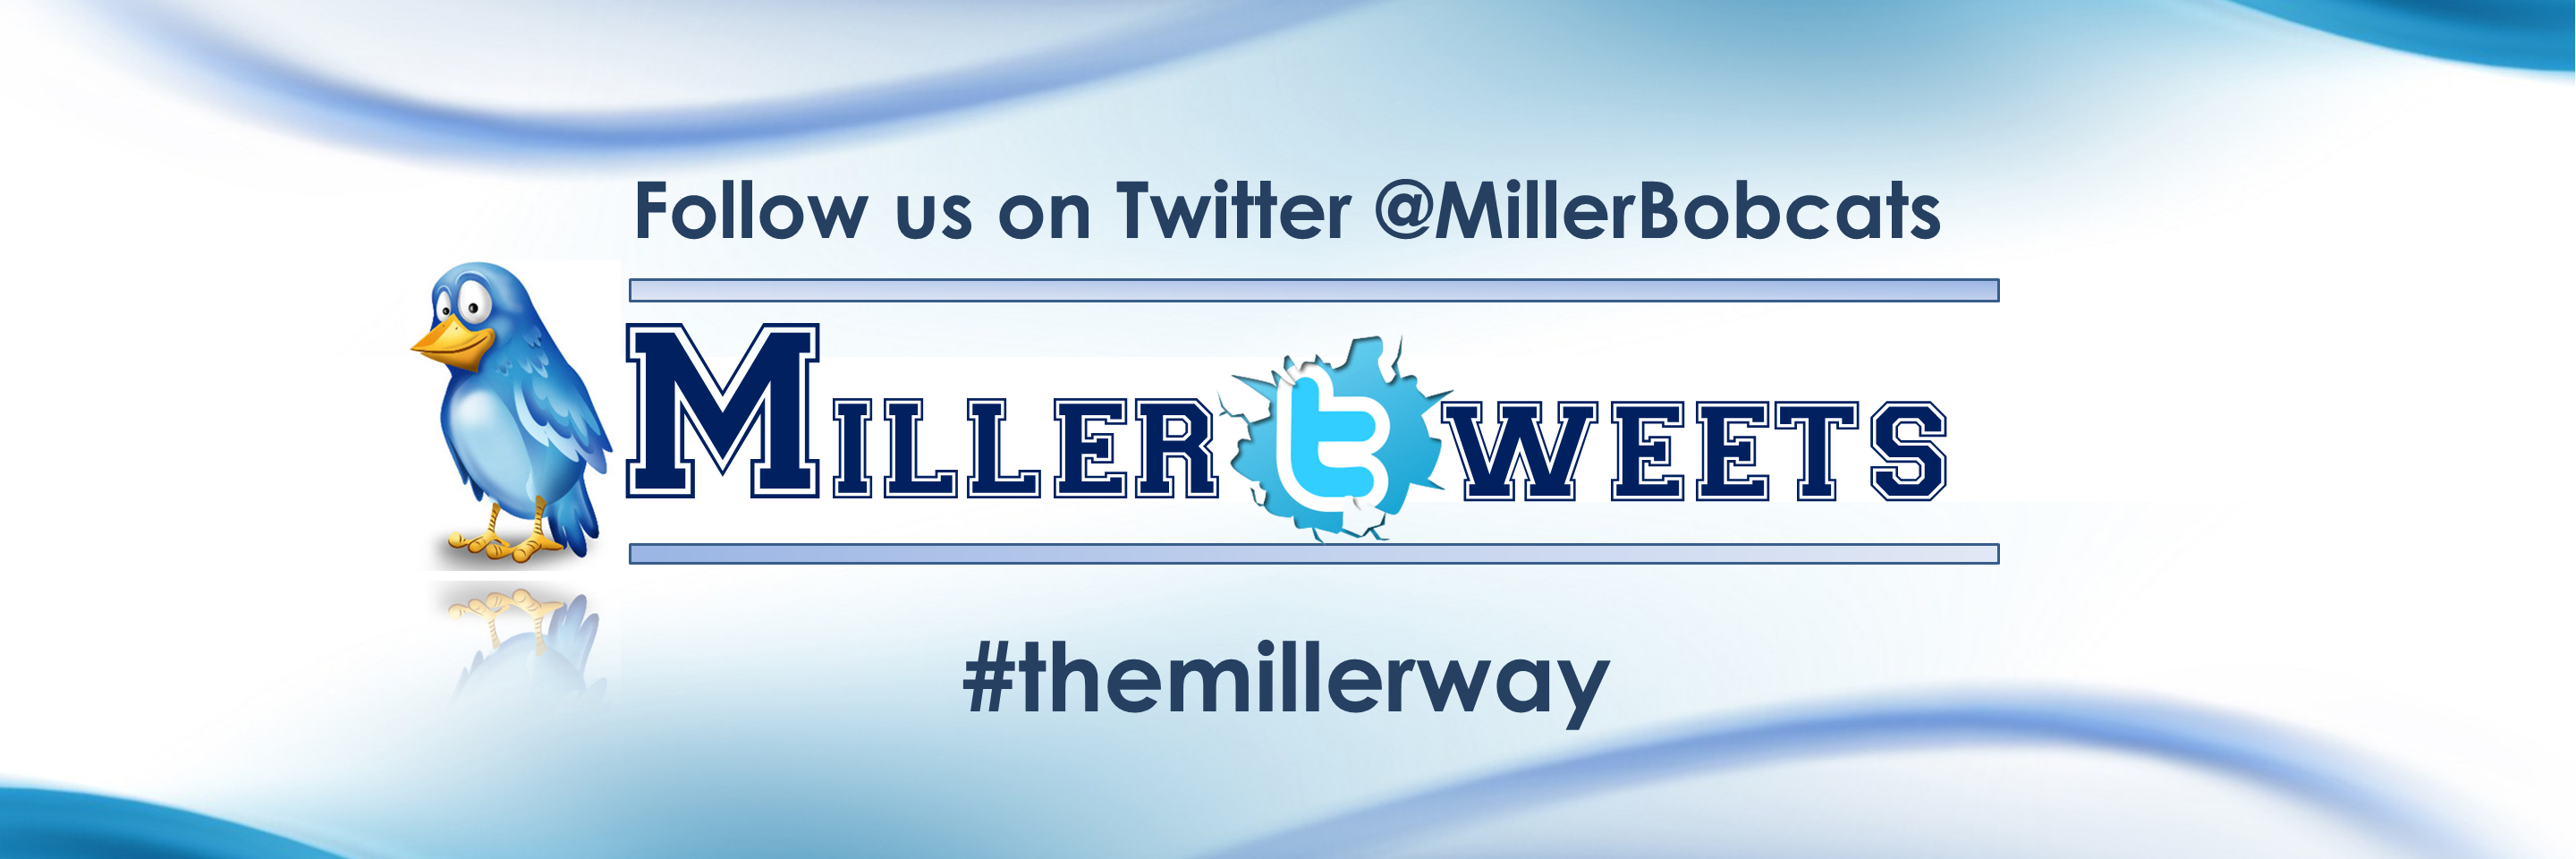 Miller Tweets Website